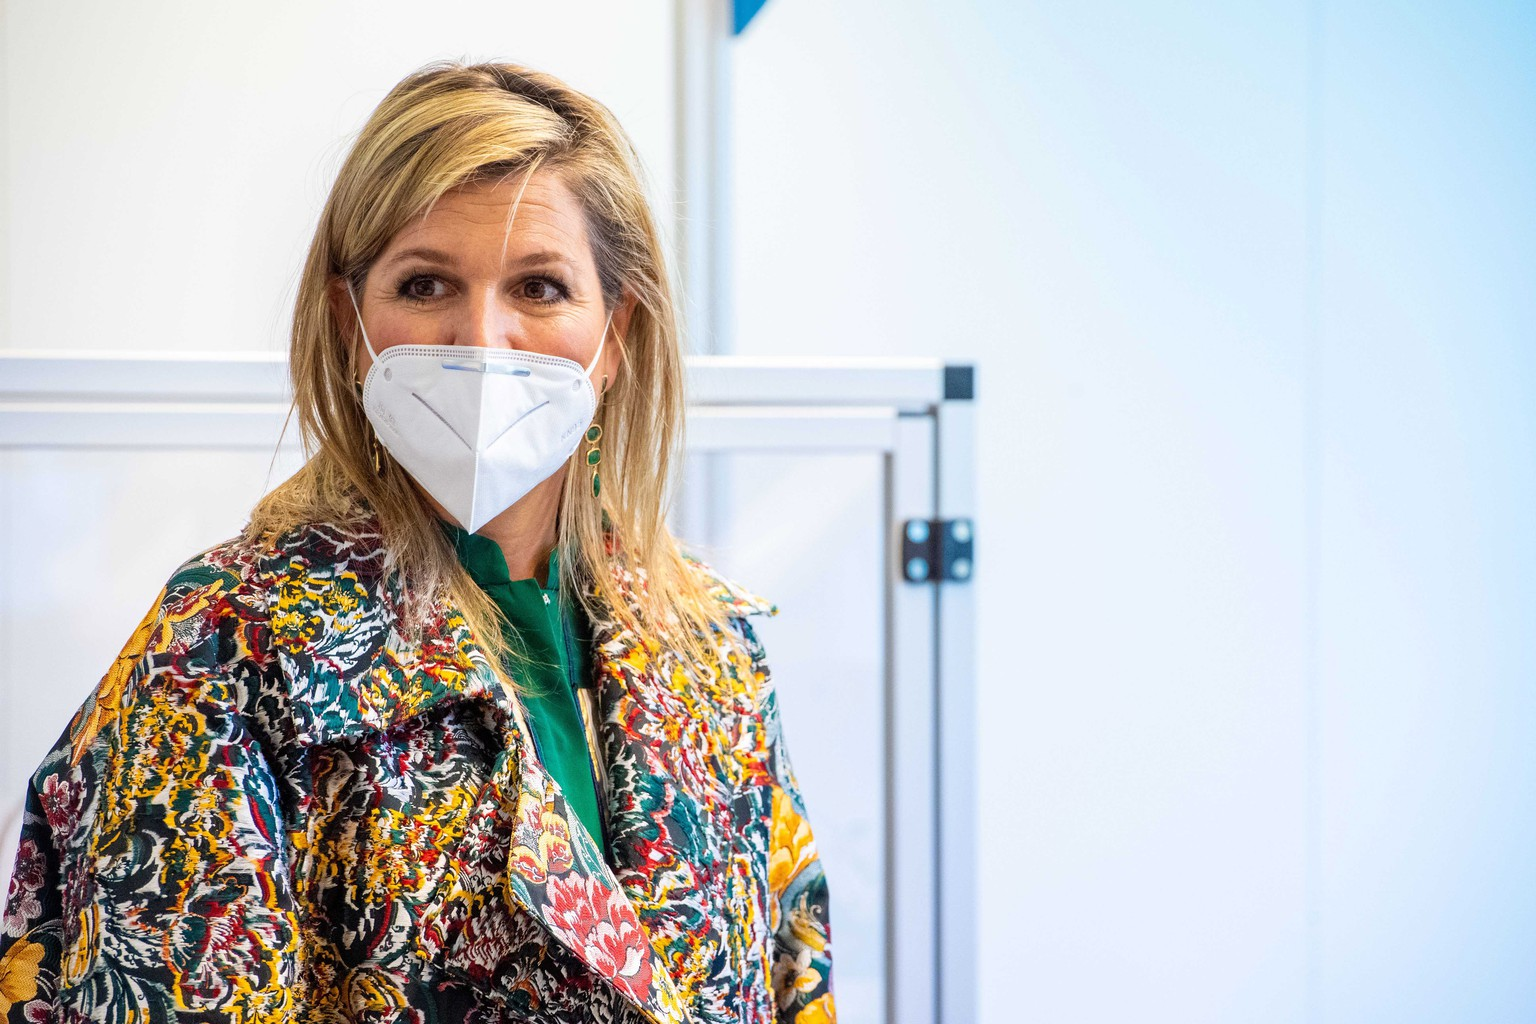 epa08366845 Dutch Queen Maxima wears a protective face mask during a working visit to technology company Demcon in Enschede, The Netherlands, 16 April 2020. The company has developed, tested and produced a ventilation system suitable for the ventilation of corona patients in intensive care.  EPA/MISCHA SCHOEMAKER / POOL